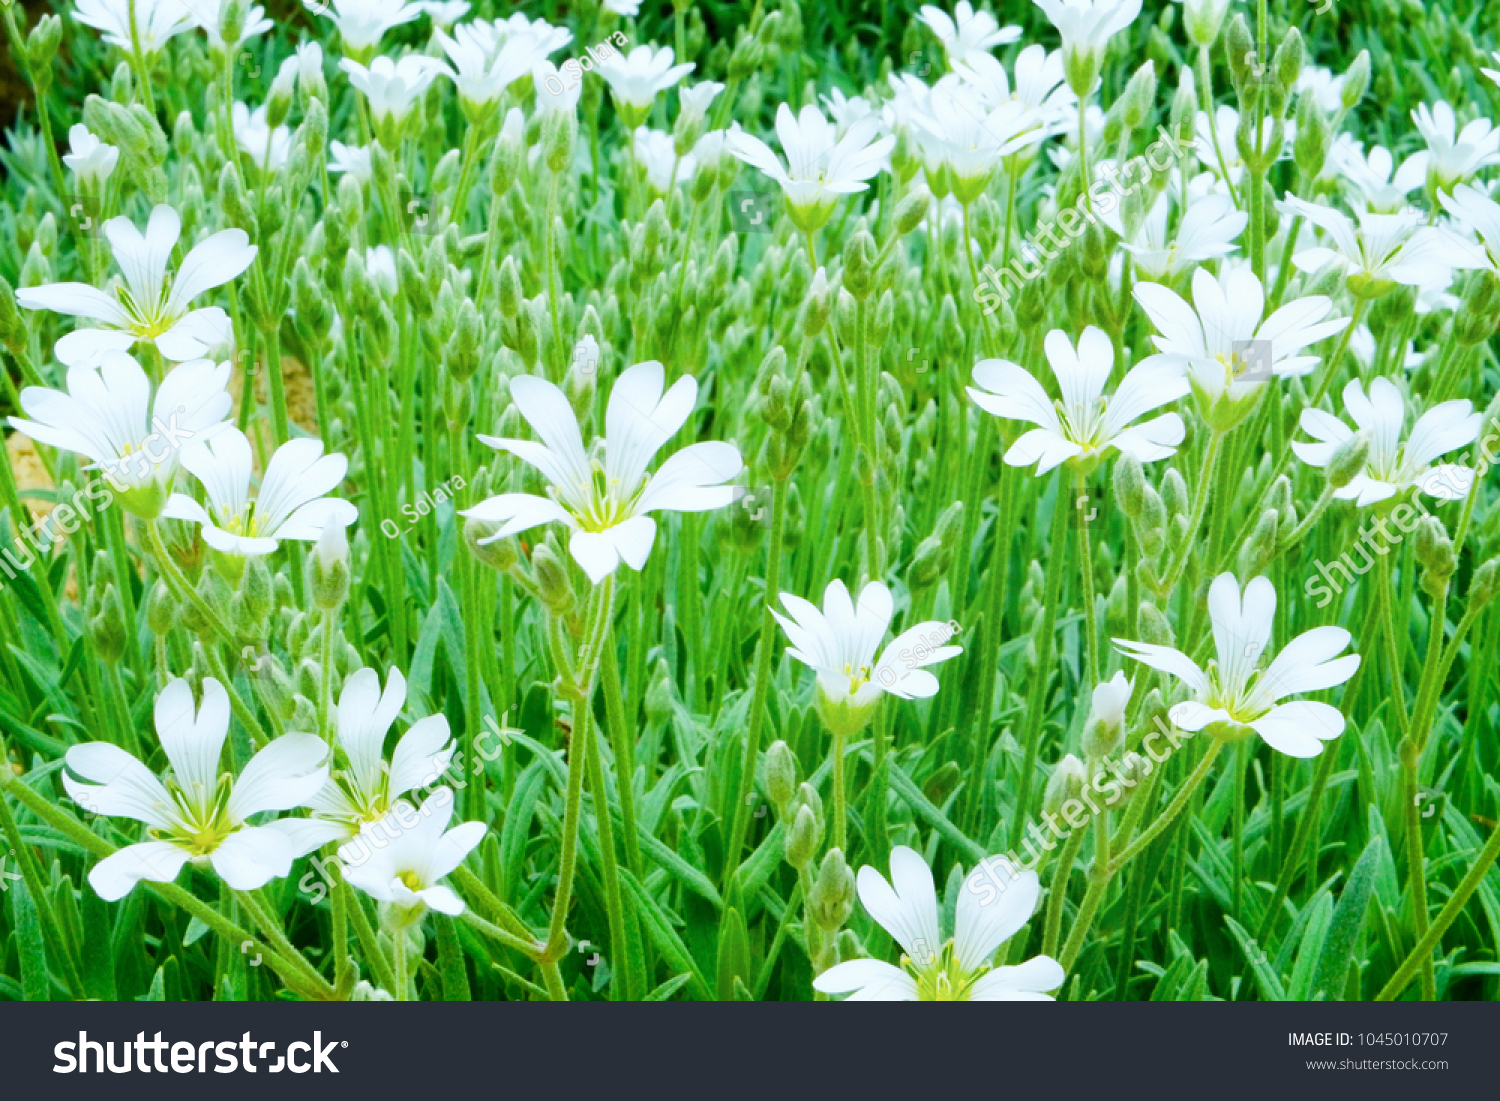 Green Lawn Big White Flowers Ground Stock Photo Edit Now